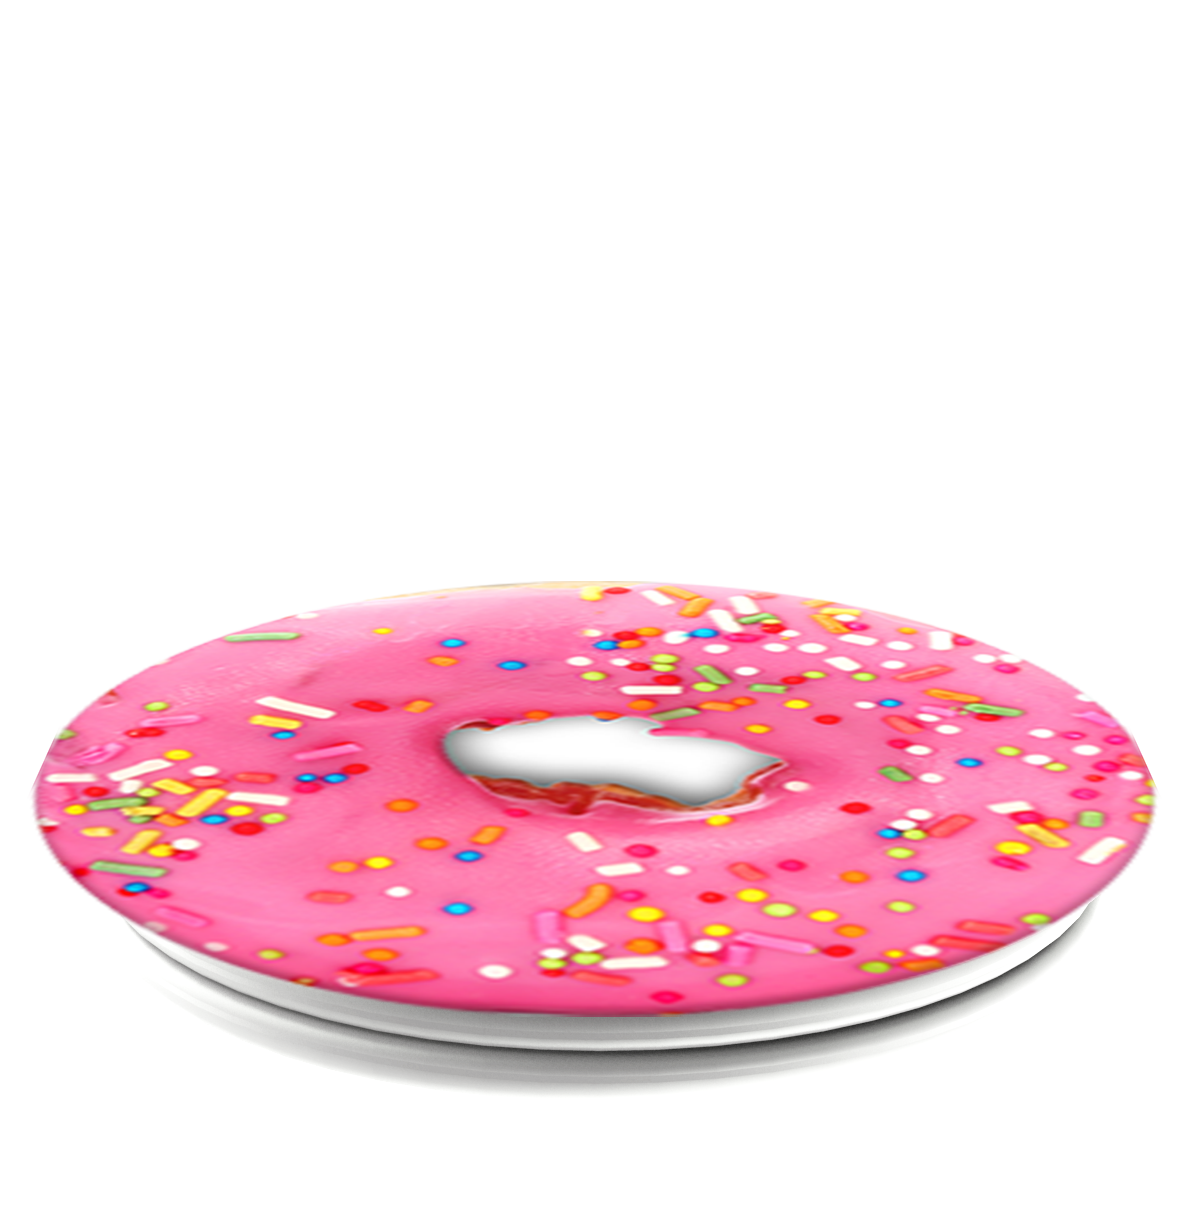 Popsocketsuk tagged page swag. Donut clipart plate donut